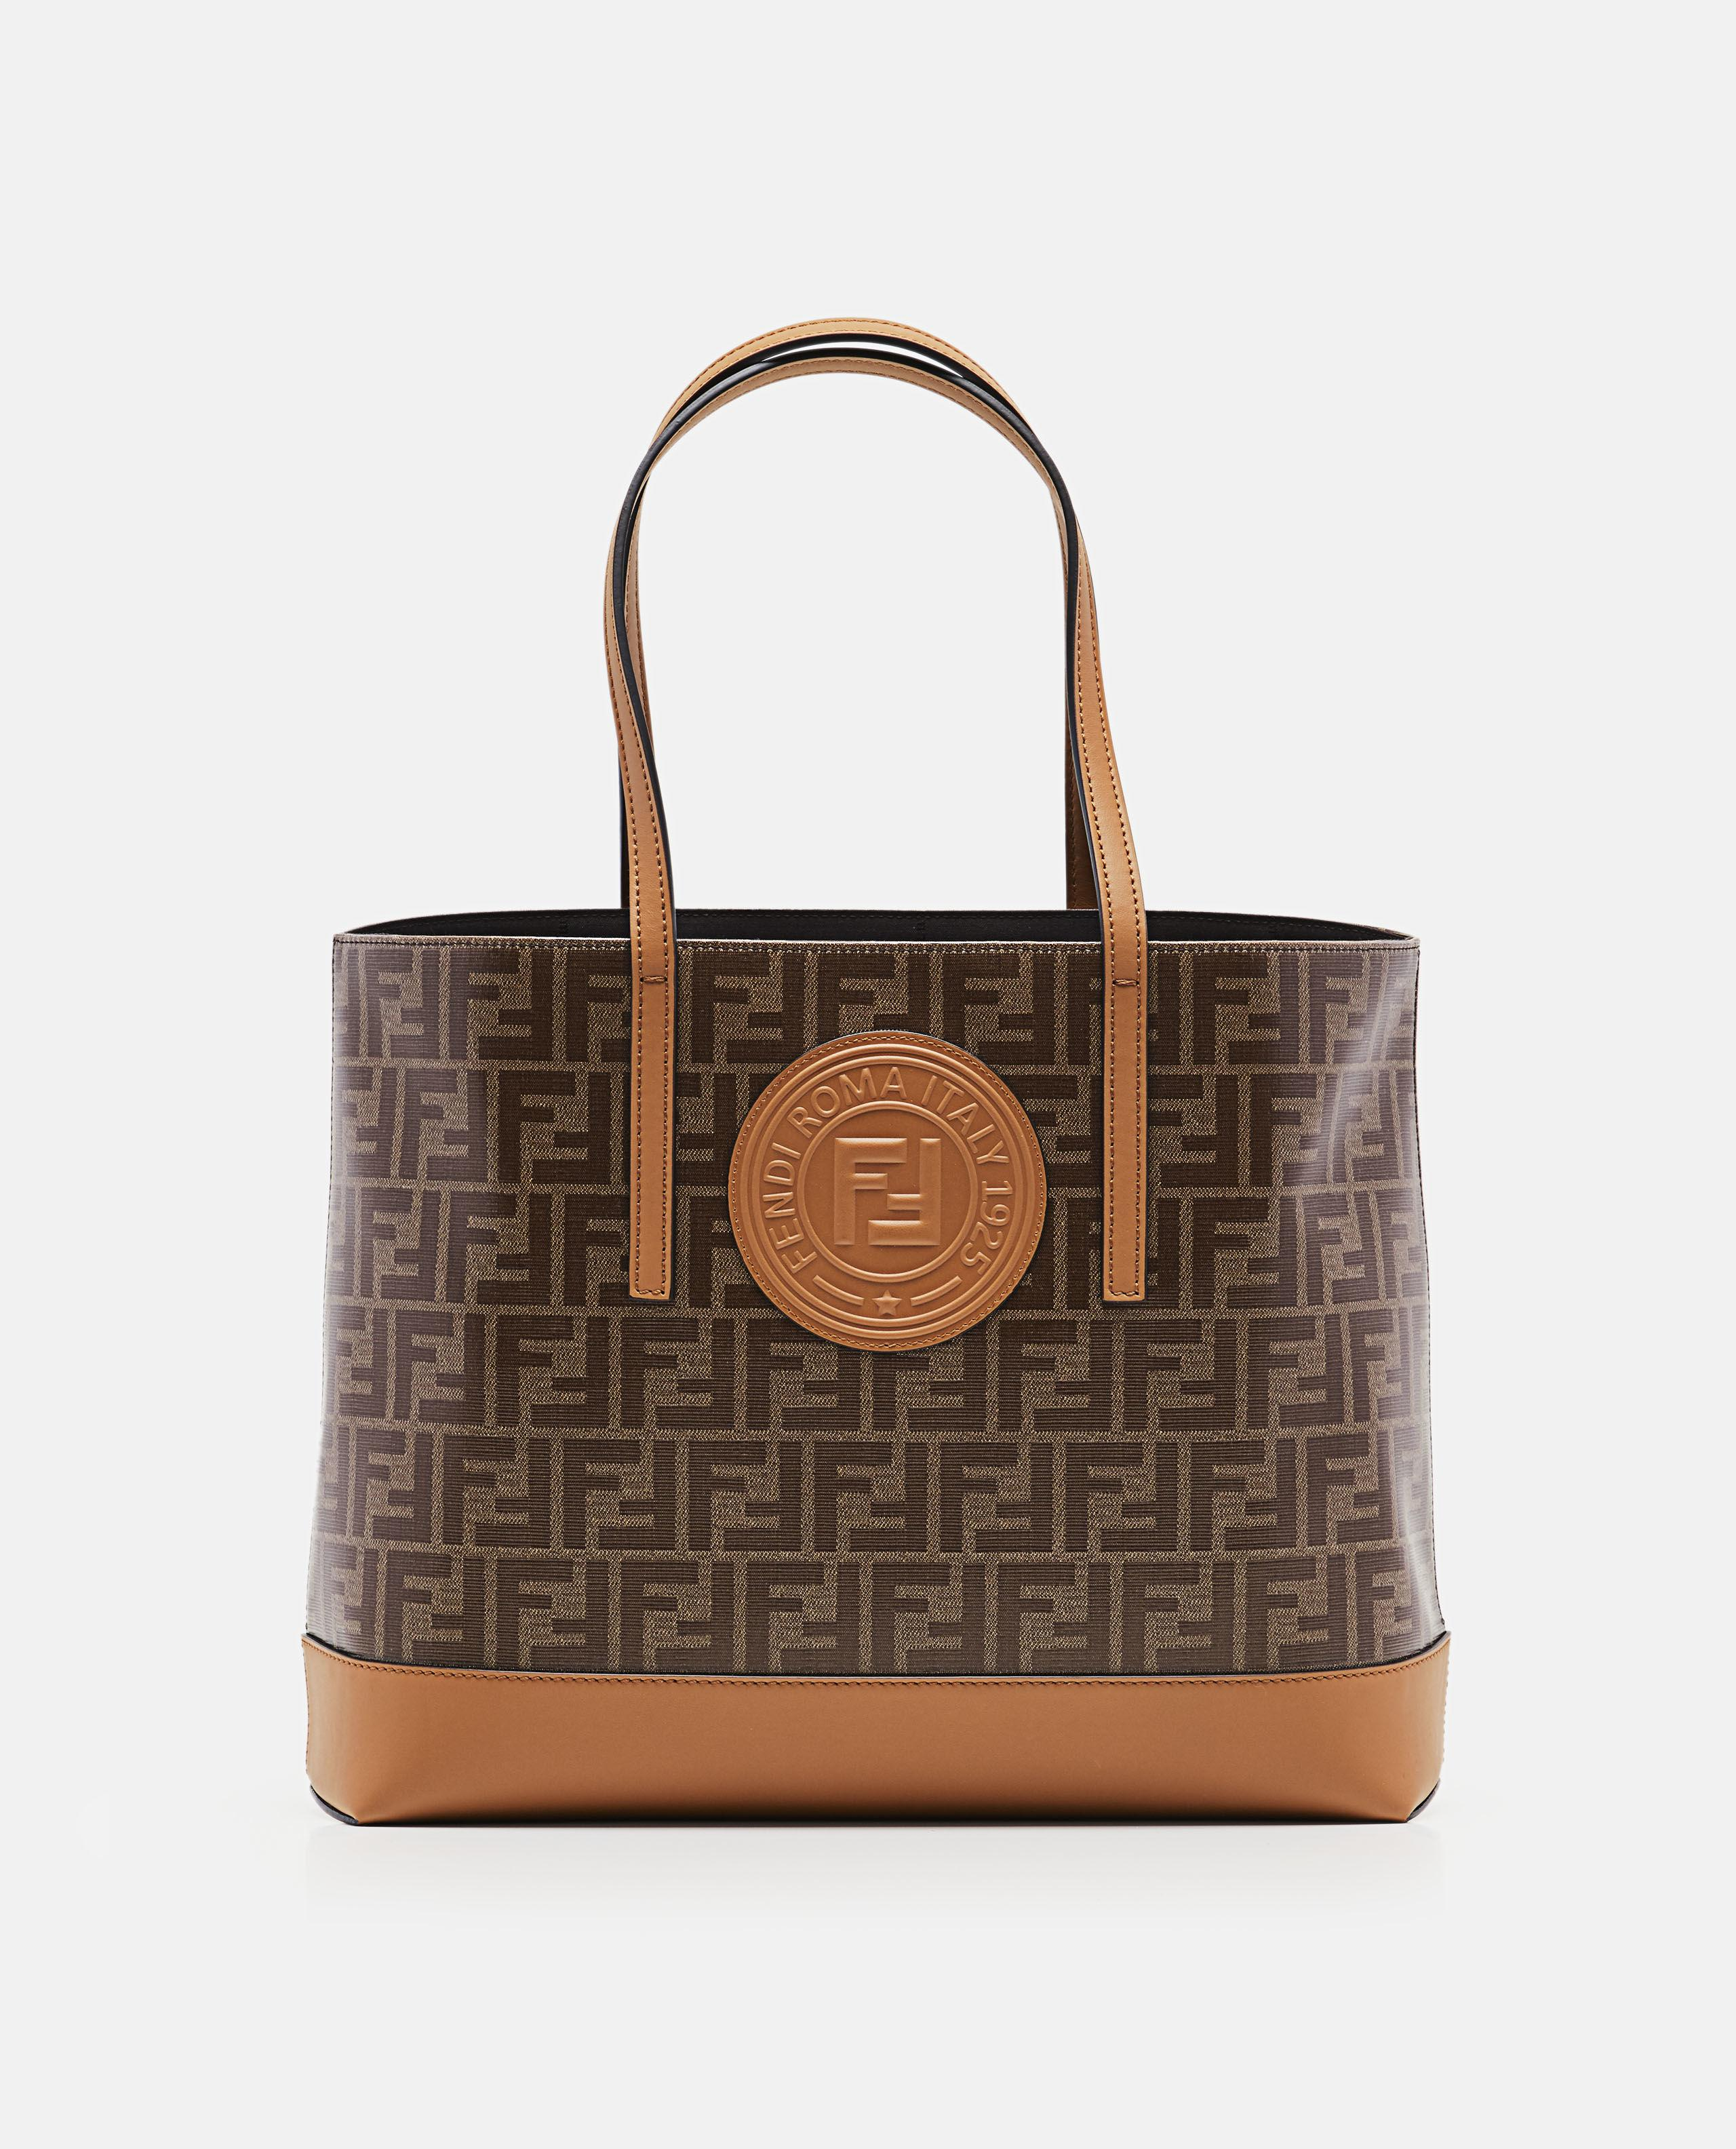 c2936593d0 Lyst - Fendi Ff Shopping Tote in Brown - Save 30%